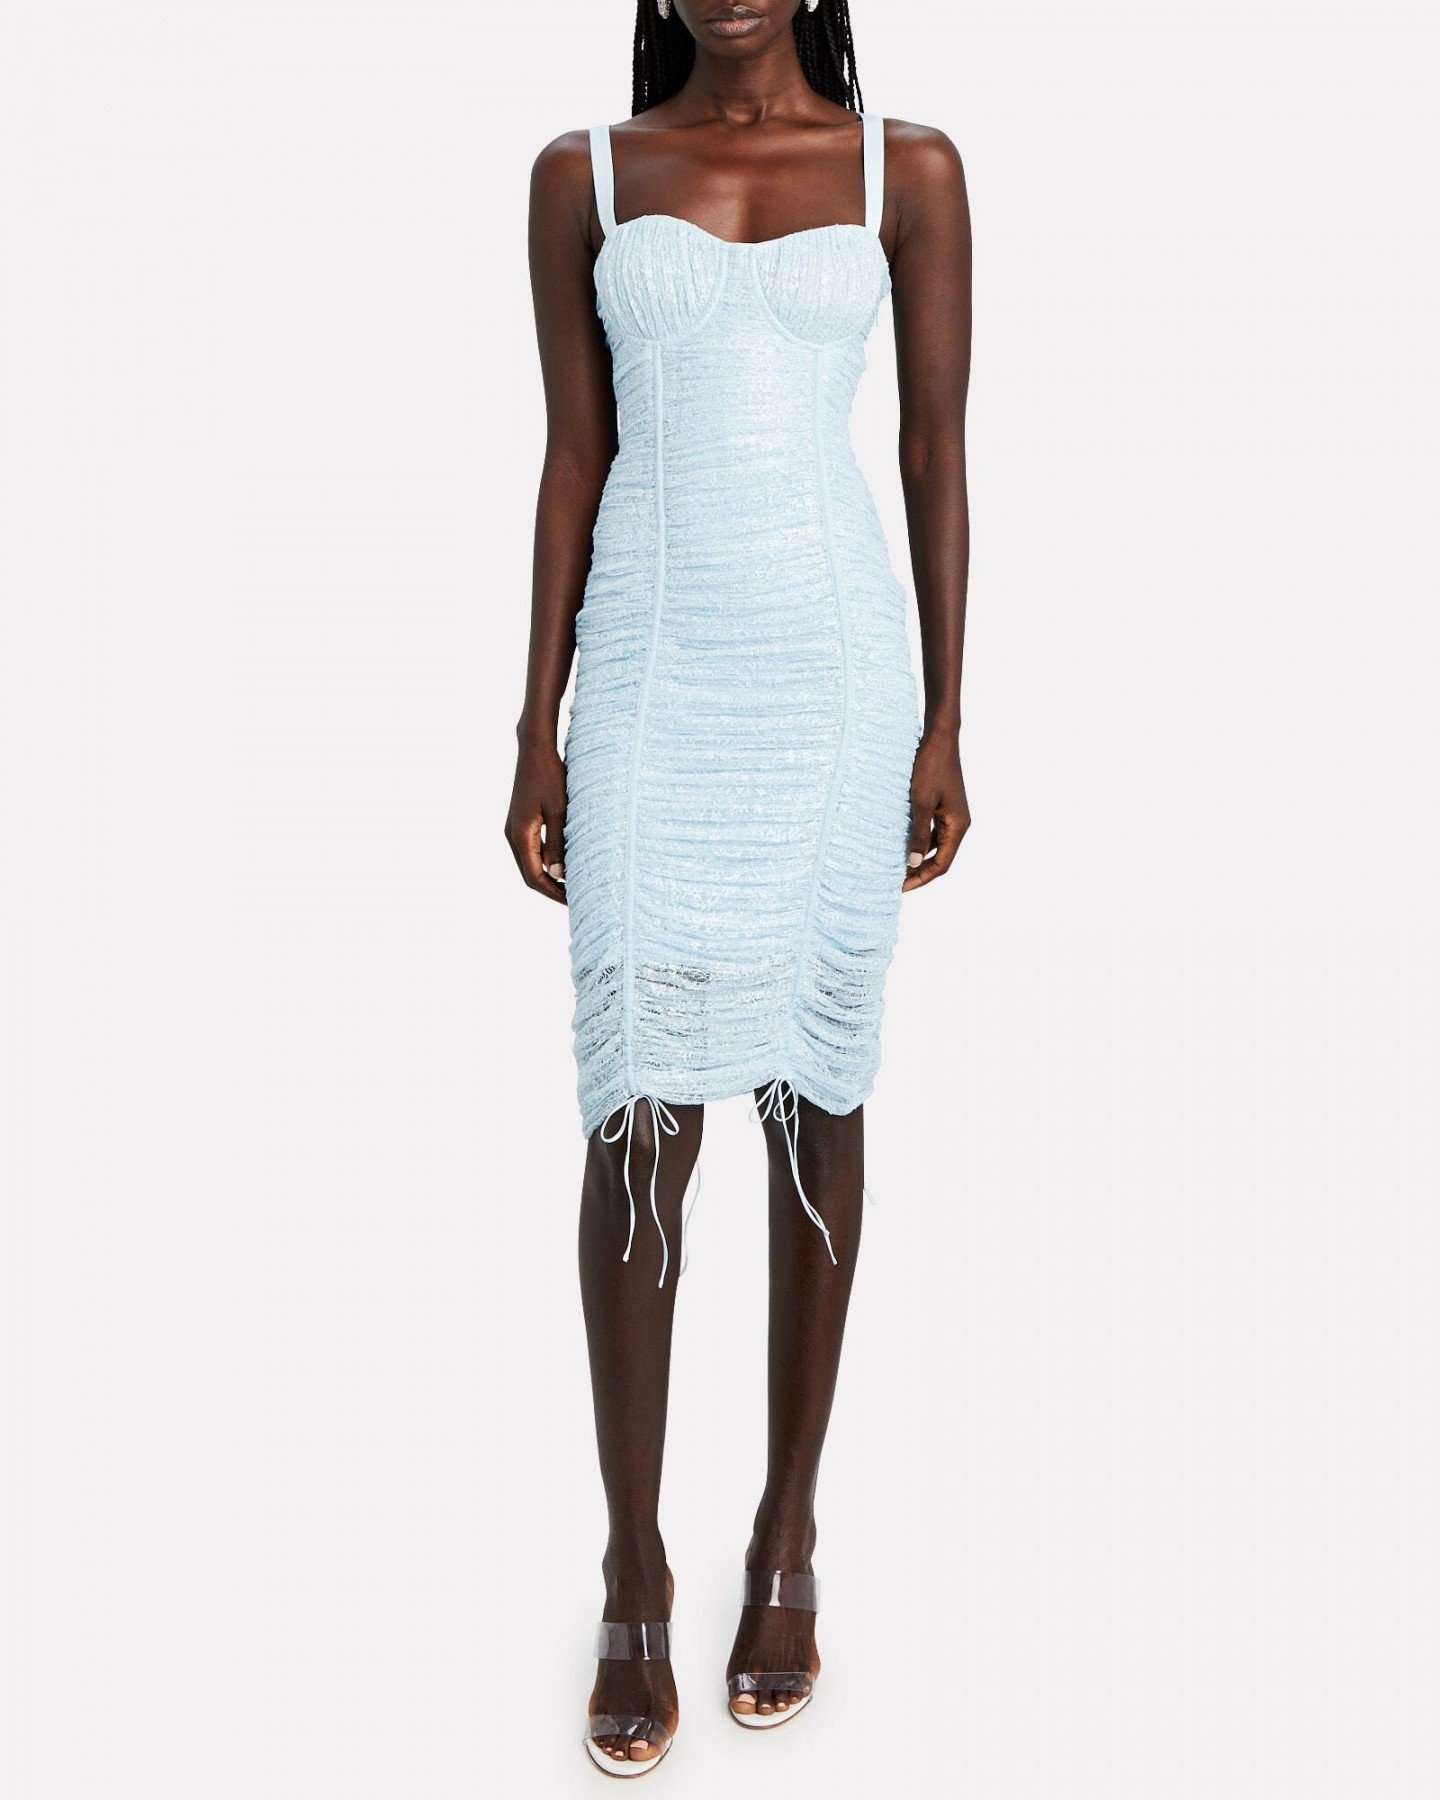 JONATHAN SIMKHAI Naia Ruched Lace Midi Dress